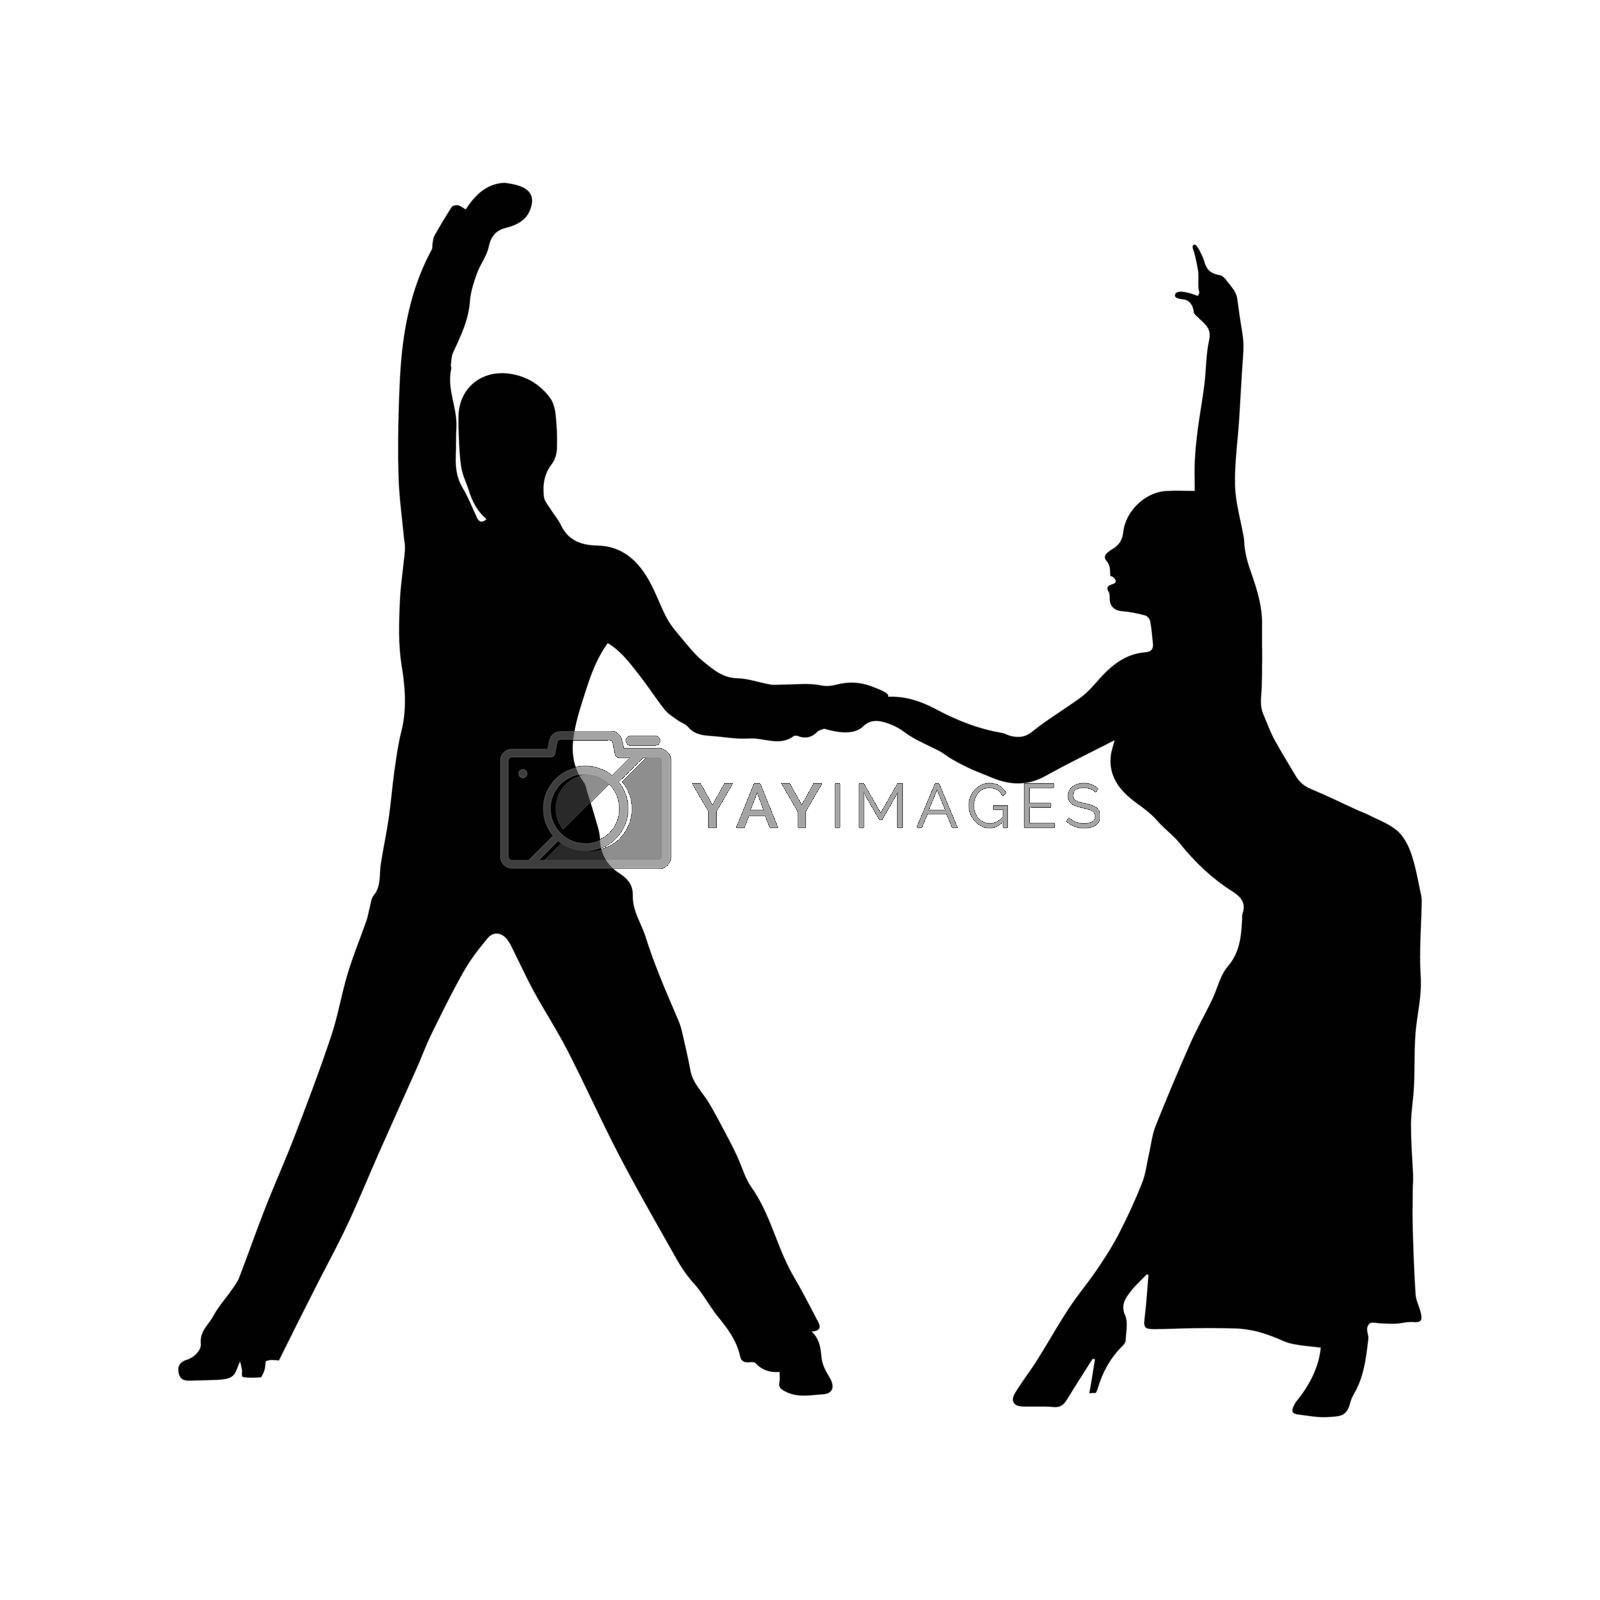 Ballroom and sports dances, contour silhouette of a couple of dancers